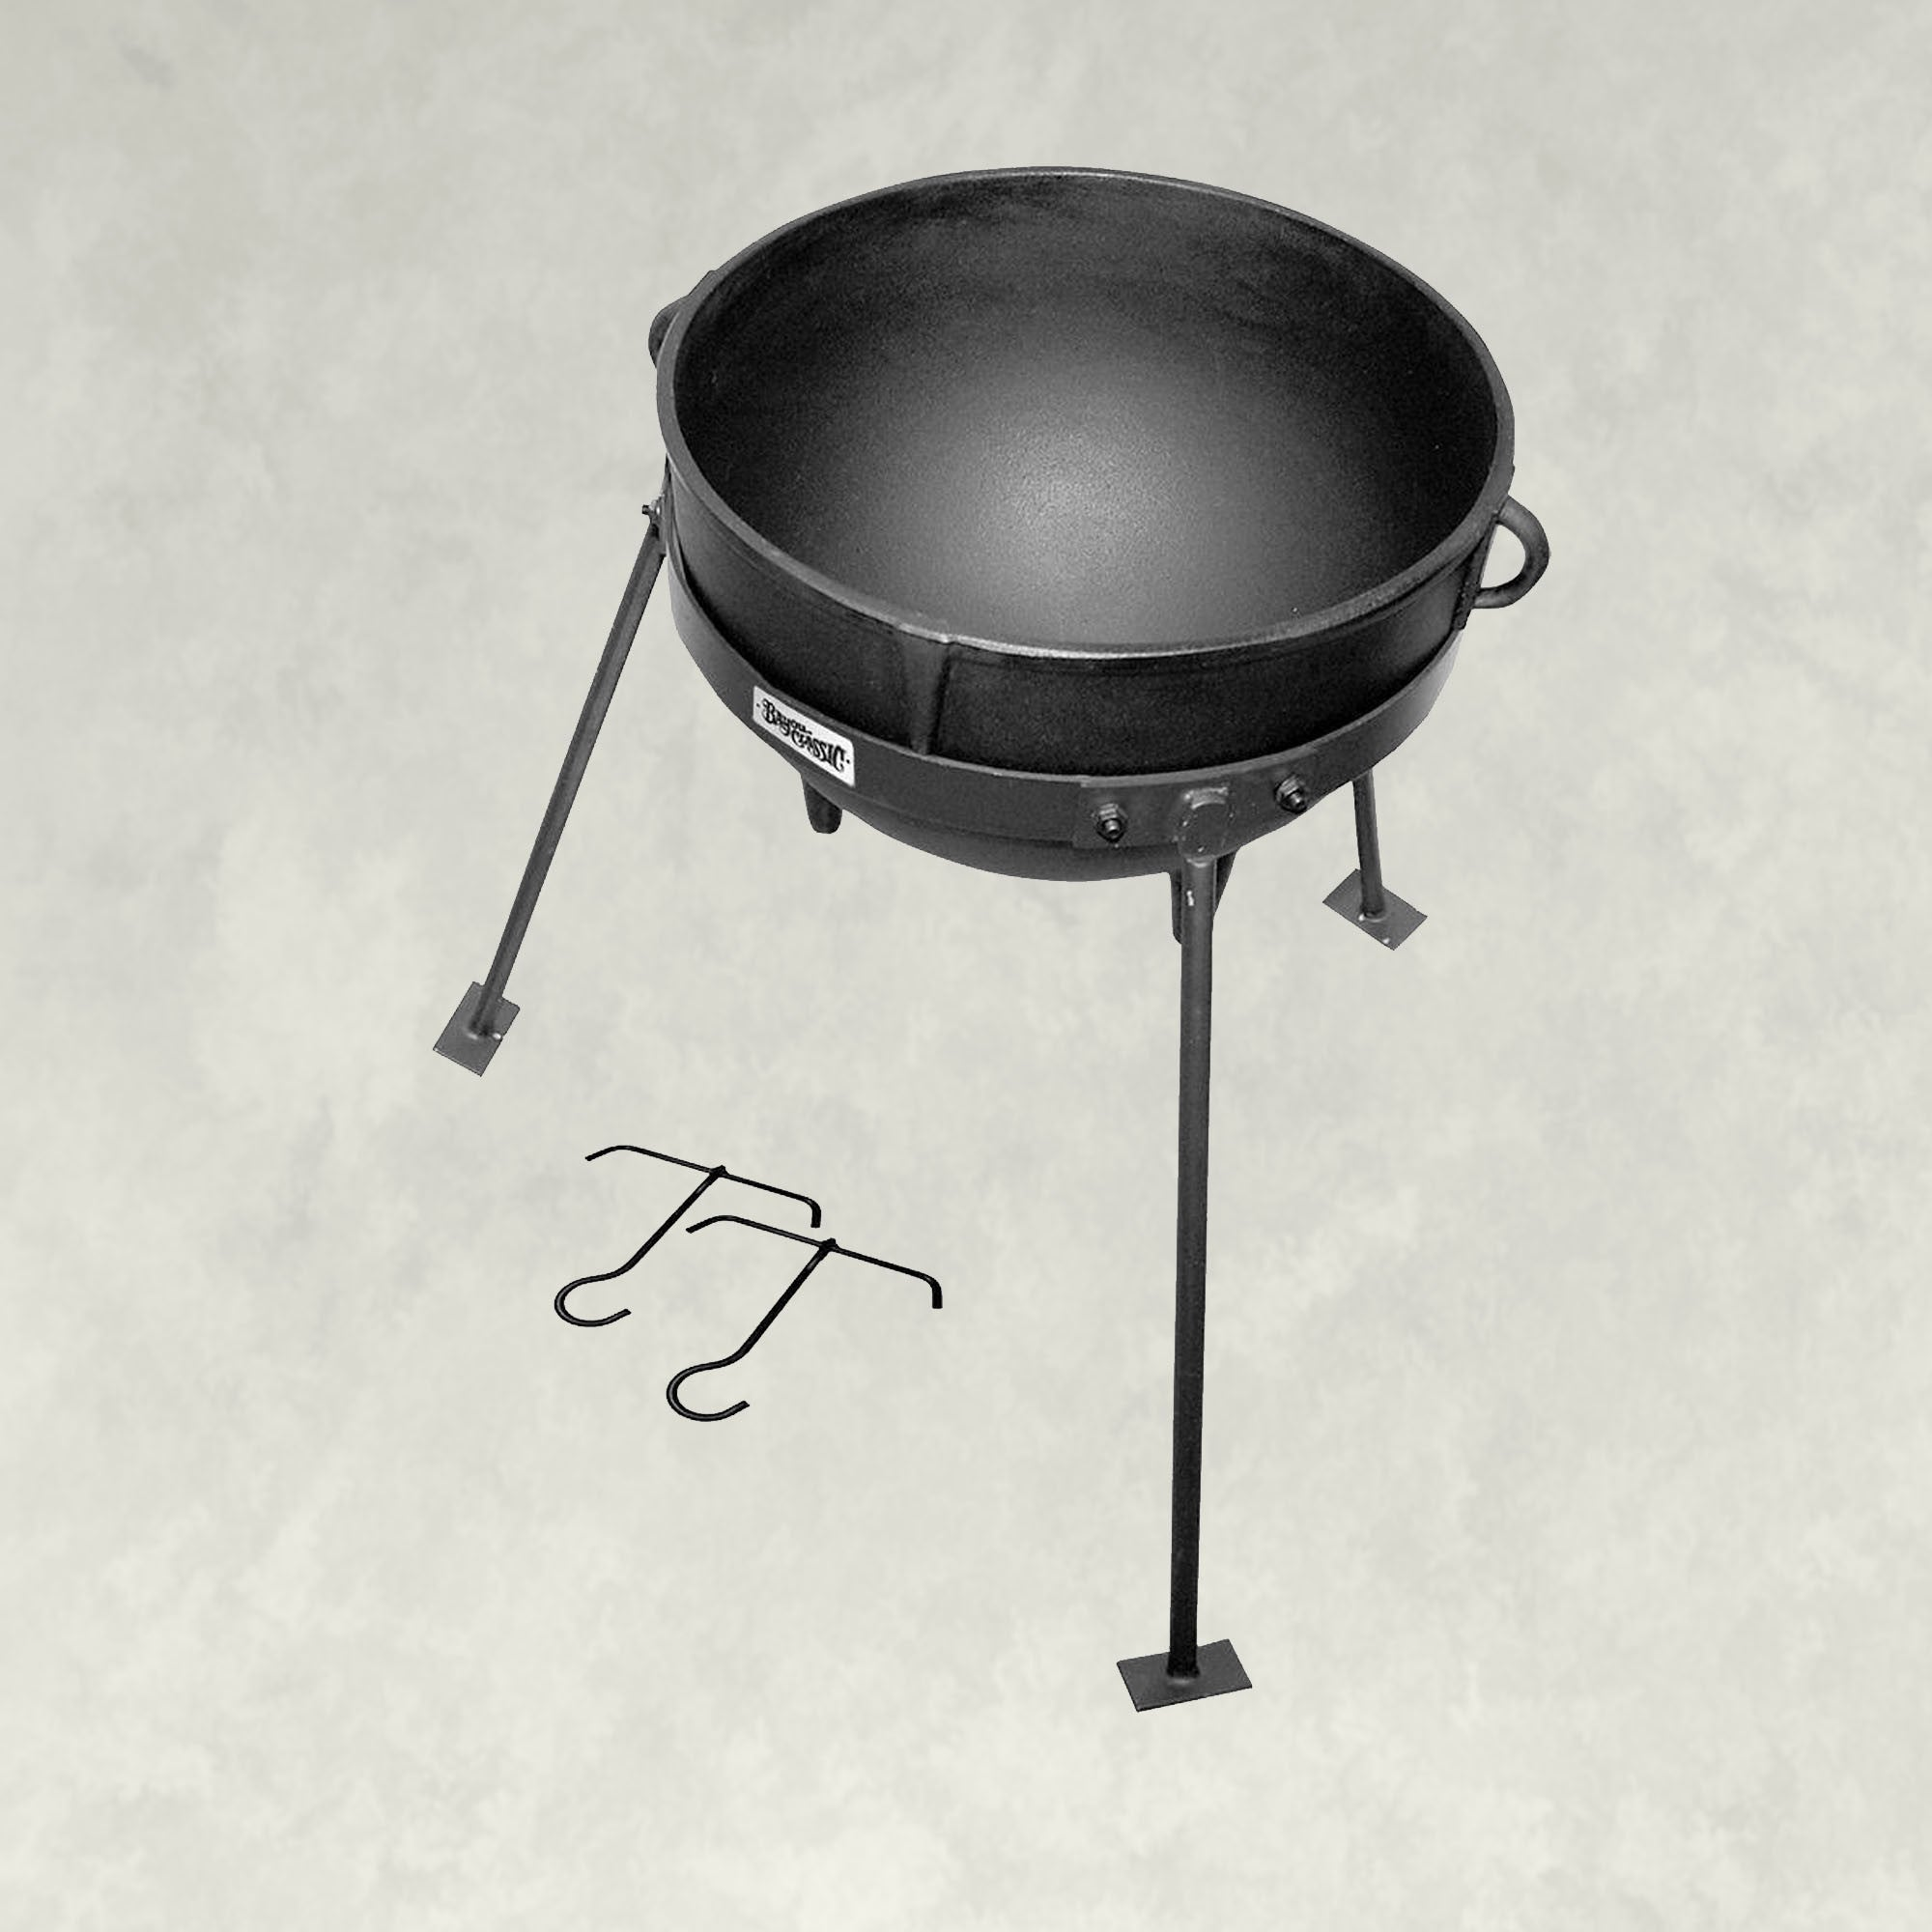 Jambalaya Kettles with Stands